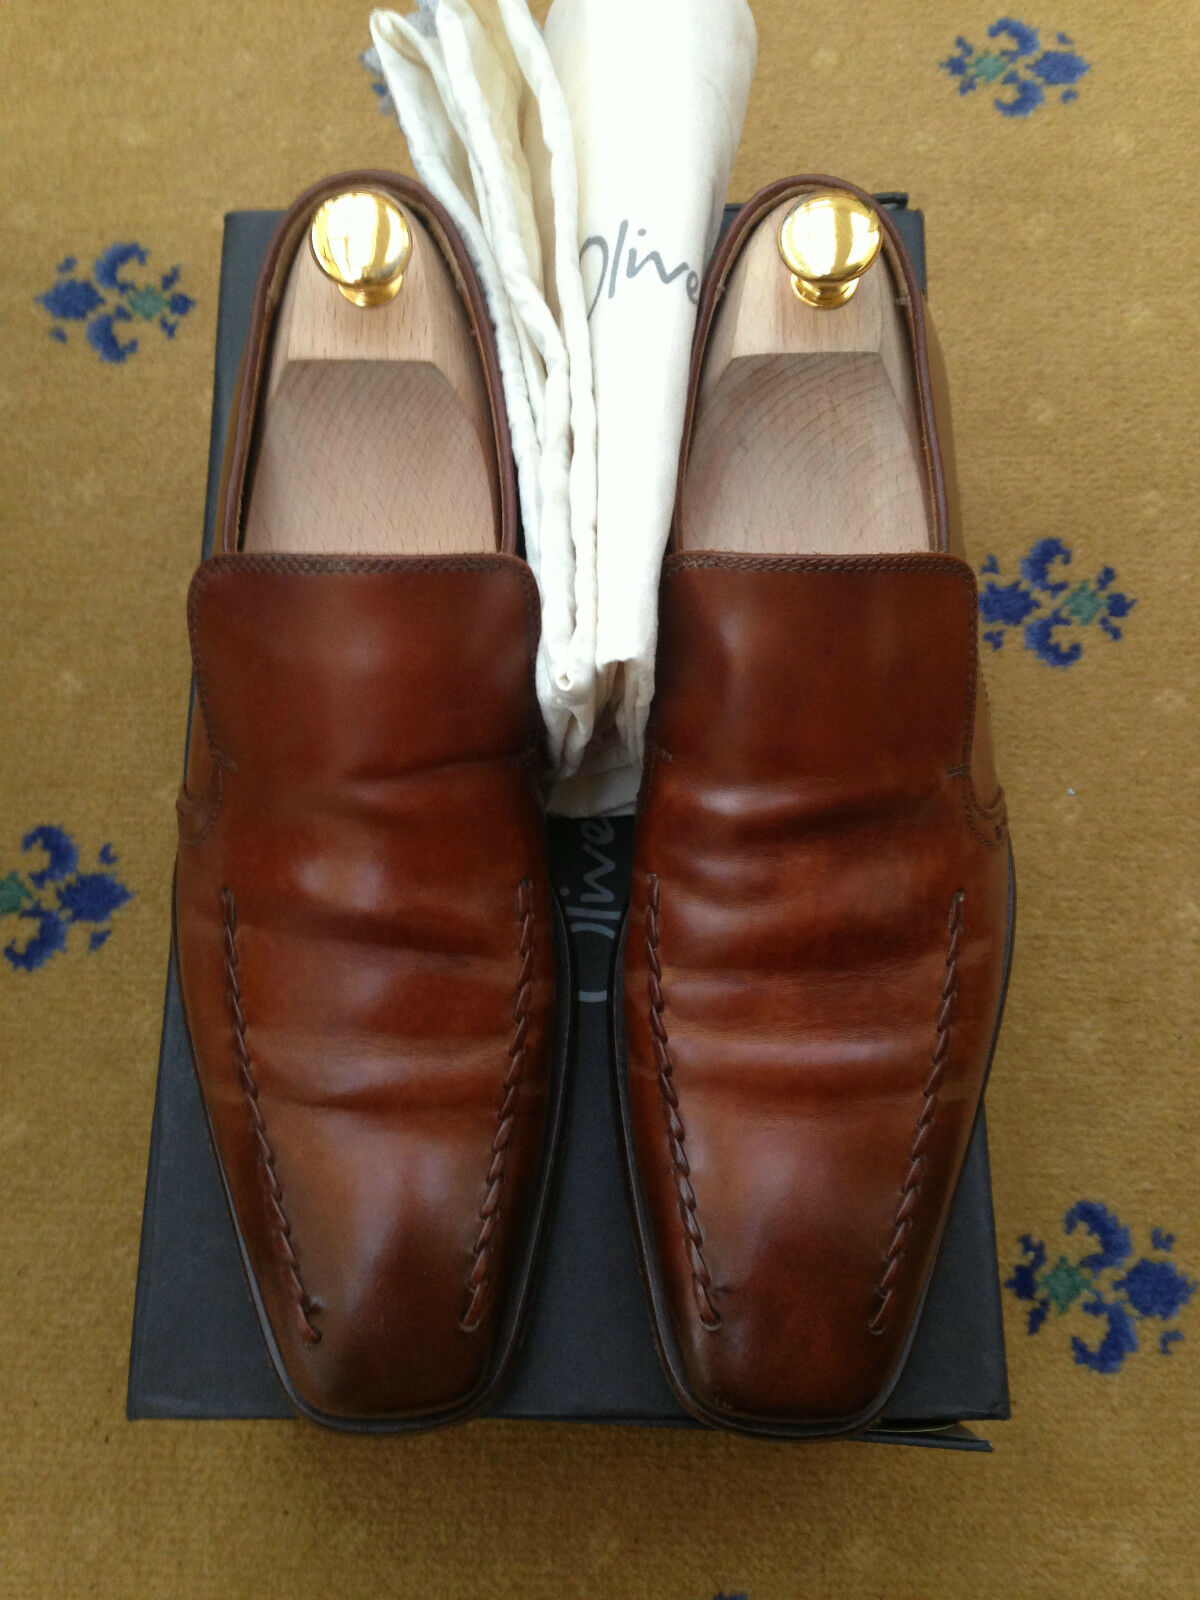 OLIVER SWEENEY MEN& 039;S schuhe TAN braun LEATHER LOAFERS MOCCASIN UK 7 US 8 EU 41